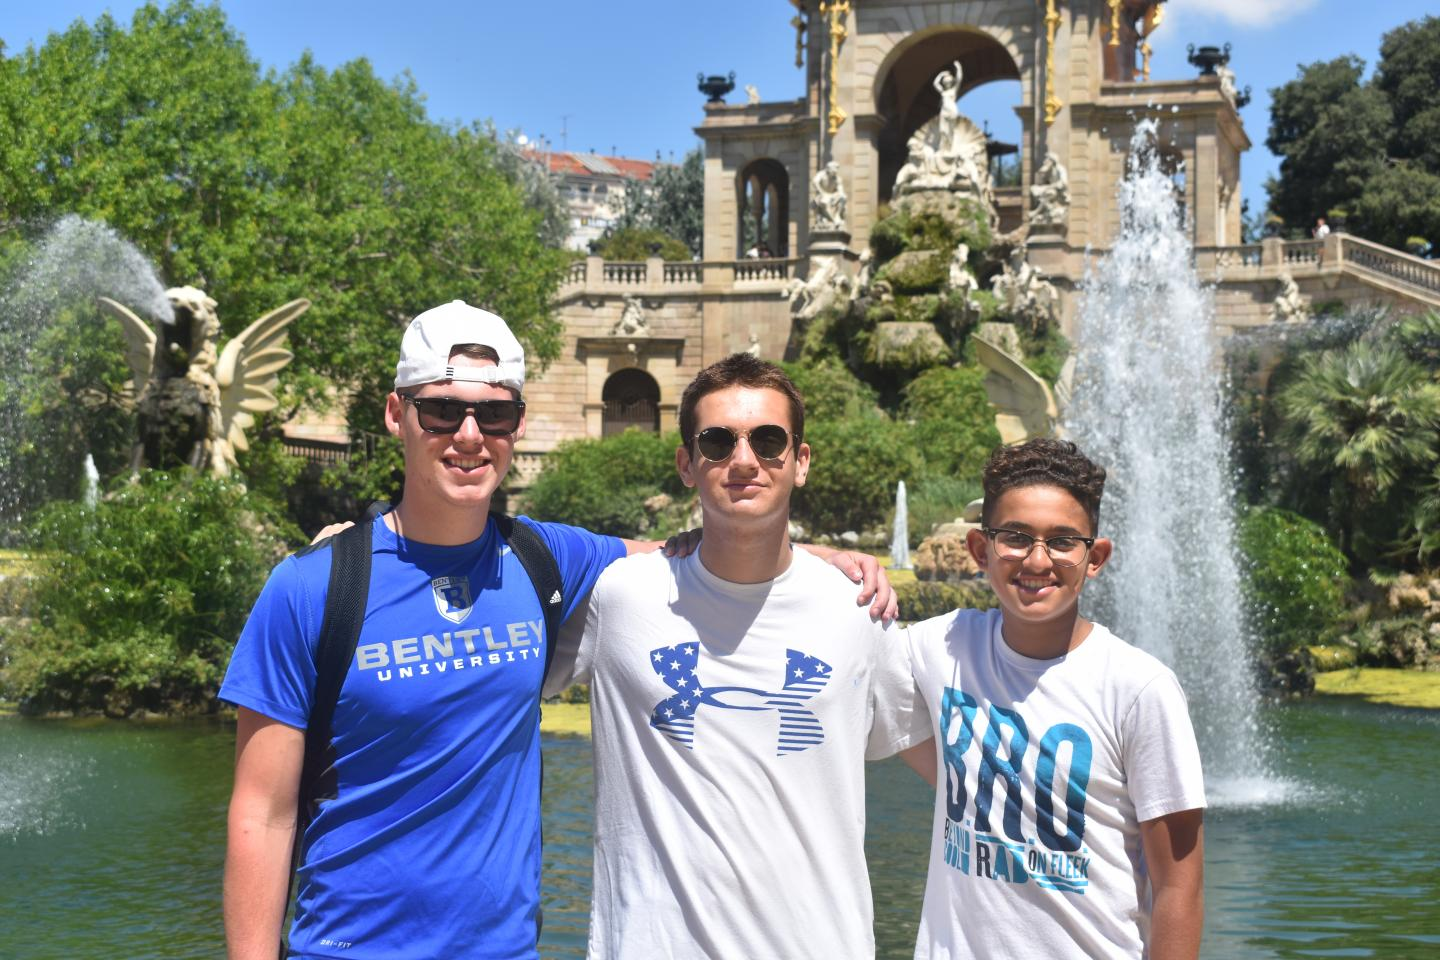 Teenage travelers relax in Barcelona on summer youth travel program